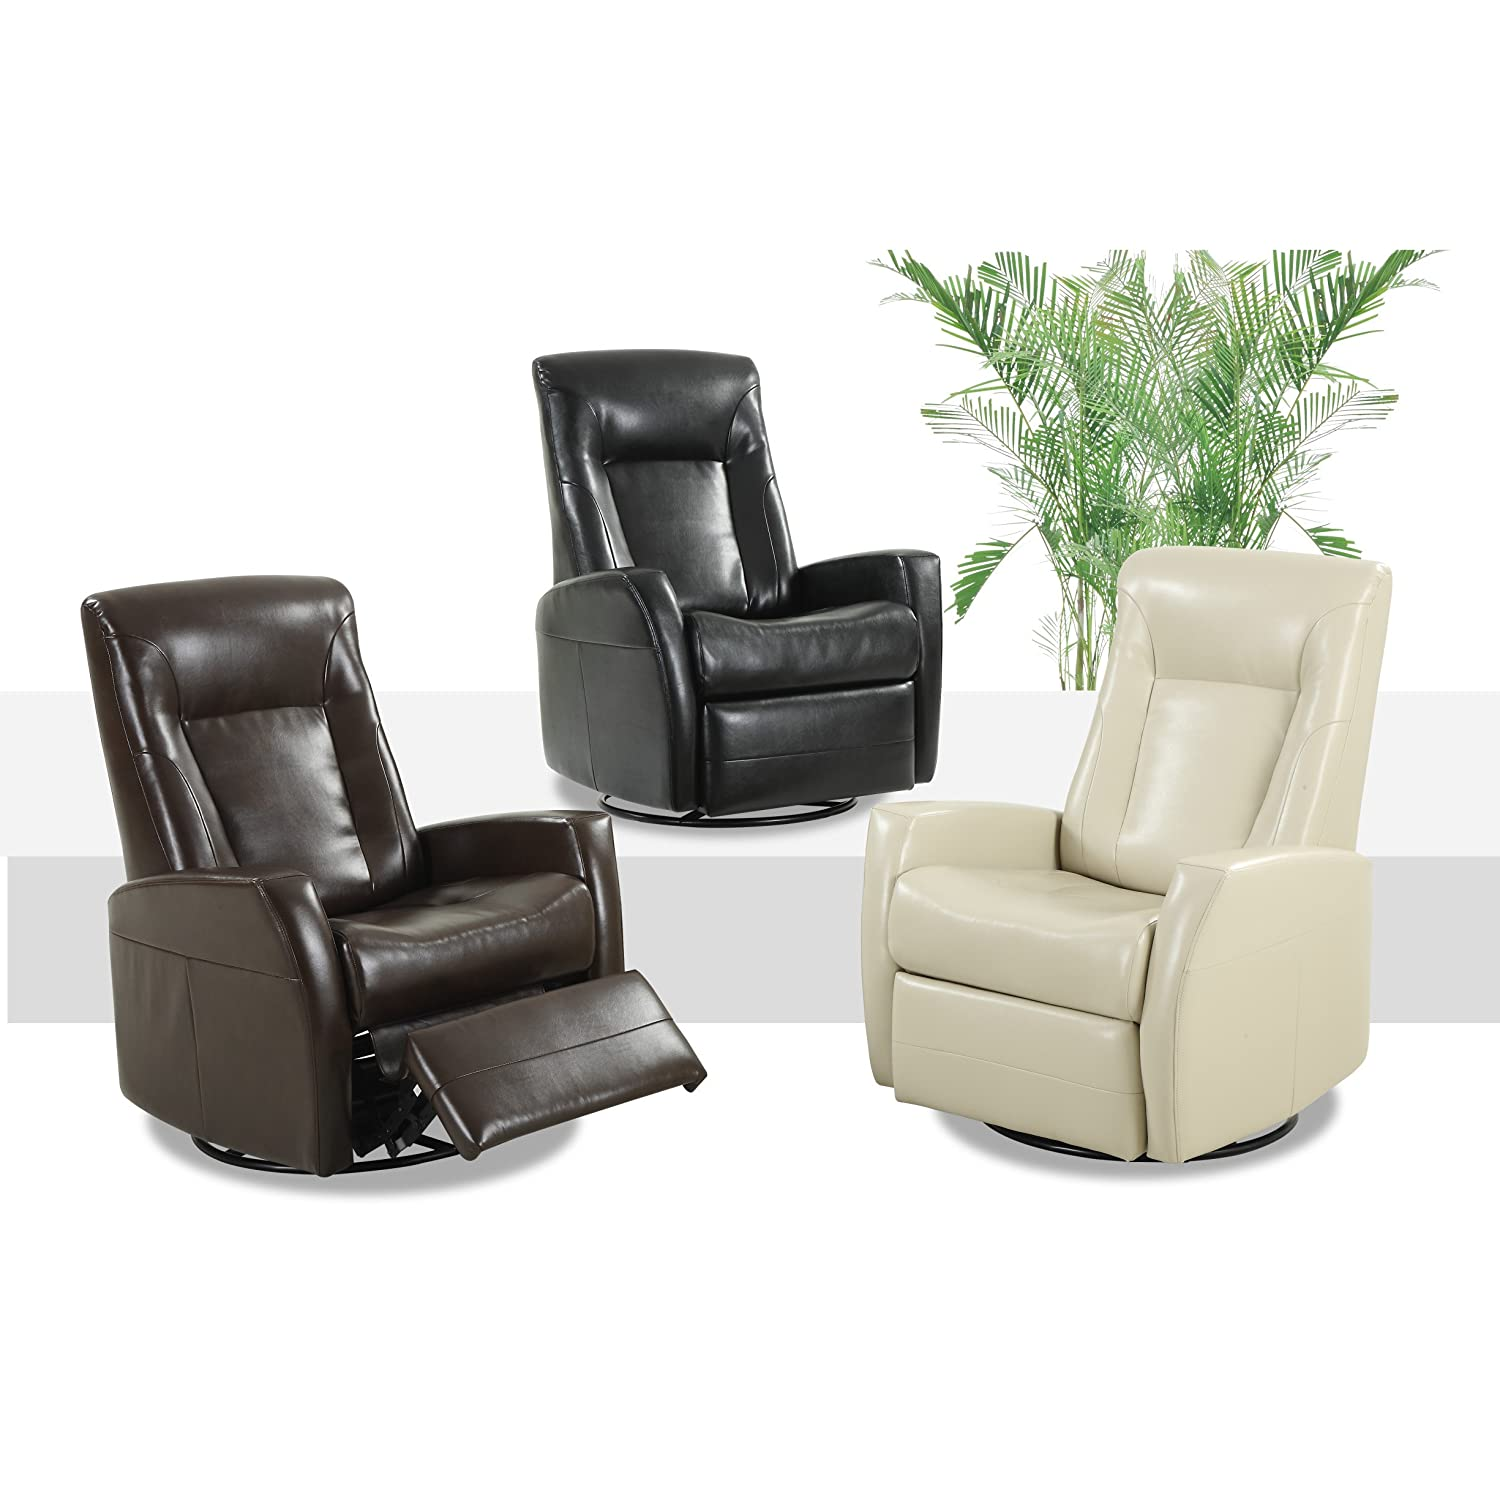 Astonishing Amazon Com Emerald Home Conrad Black Recliner With Faux Caraccident5 Cool Chair Designs And Ideas Caraccident5Info